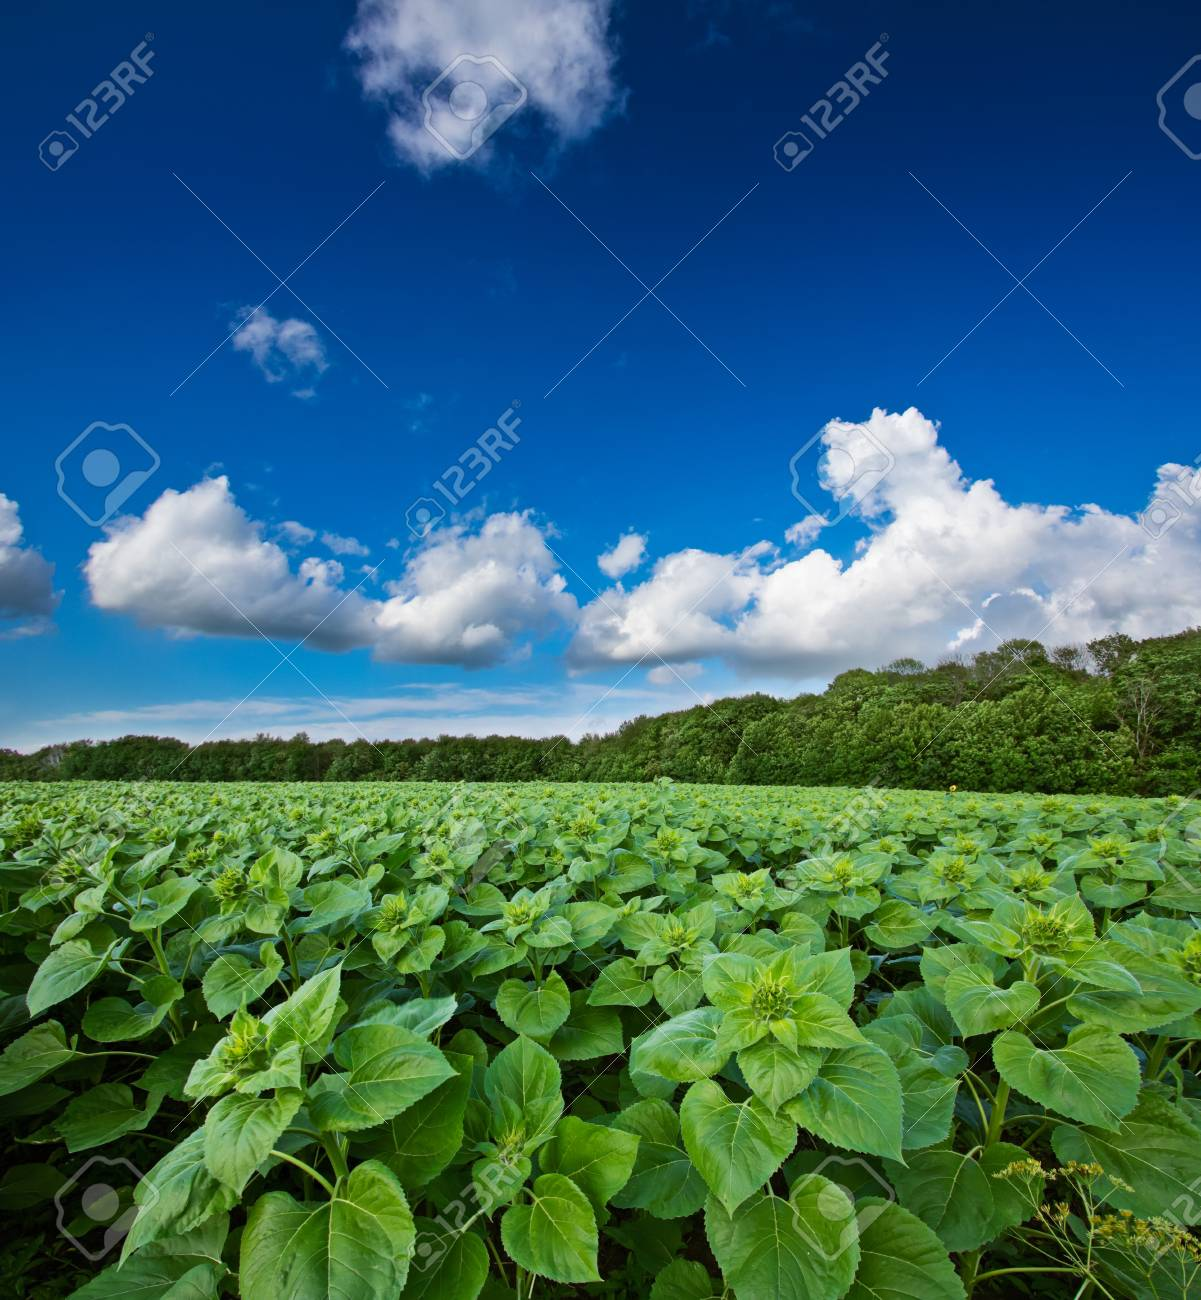 Green sunflower field over blue cloudy sky Stock Photo - 14532820